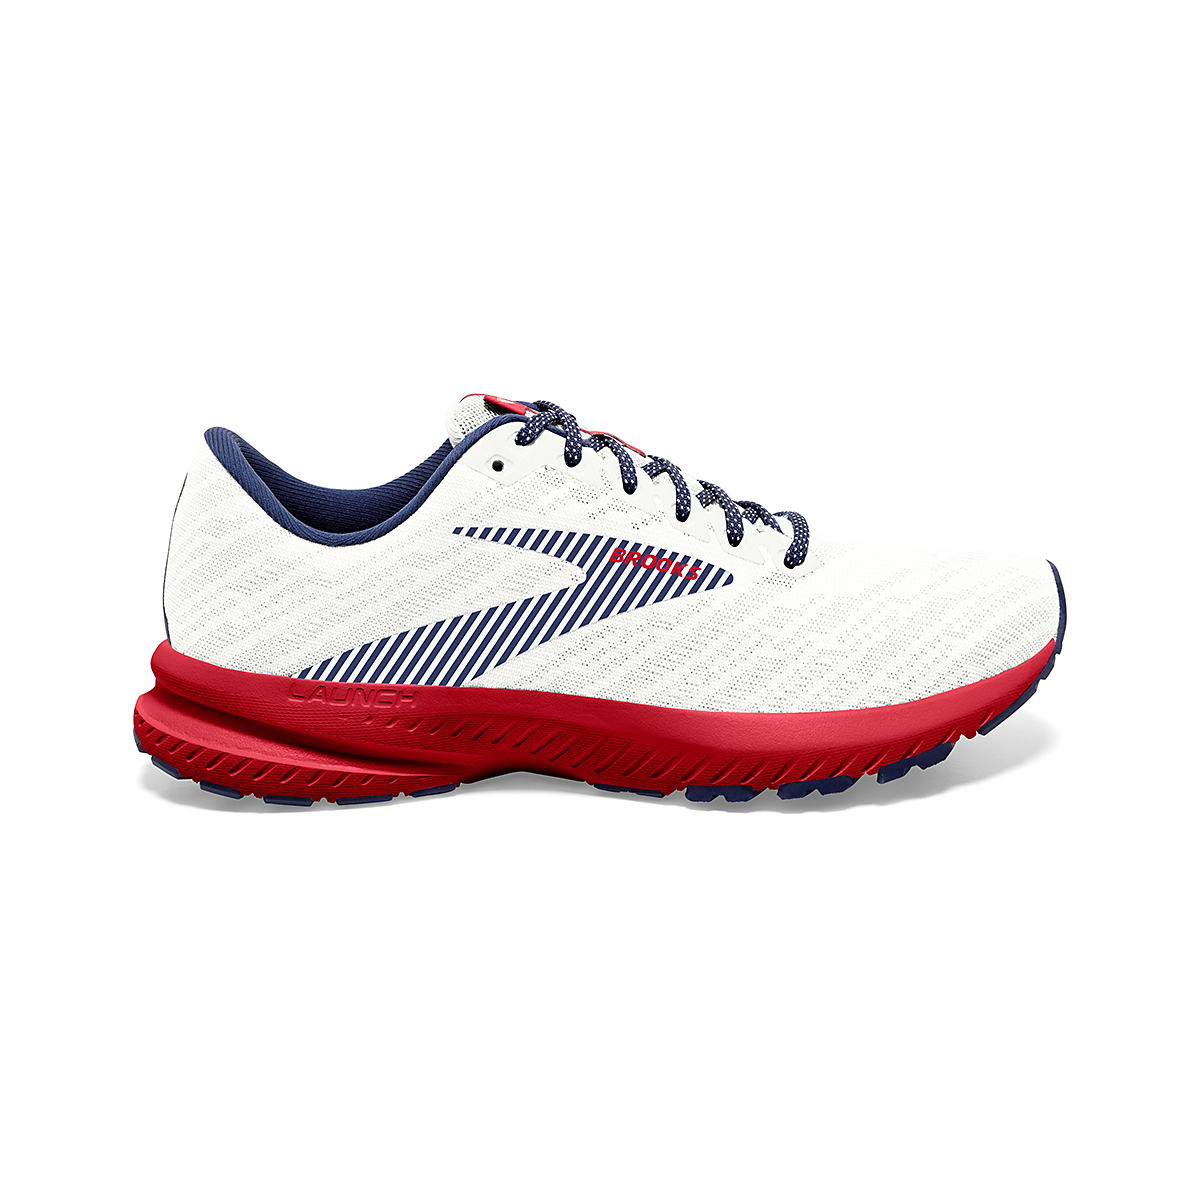 Women's Brooks Launch 7 Usa Running Shoe - Color: White/Blue/Red - Size: 6.5 - Width: Regular, White/Blue/Red, large, image 1